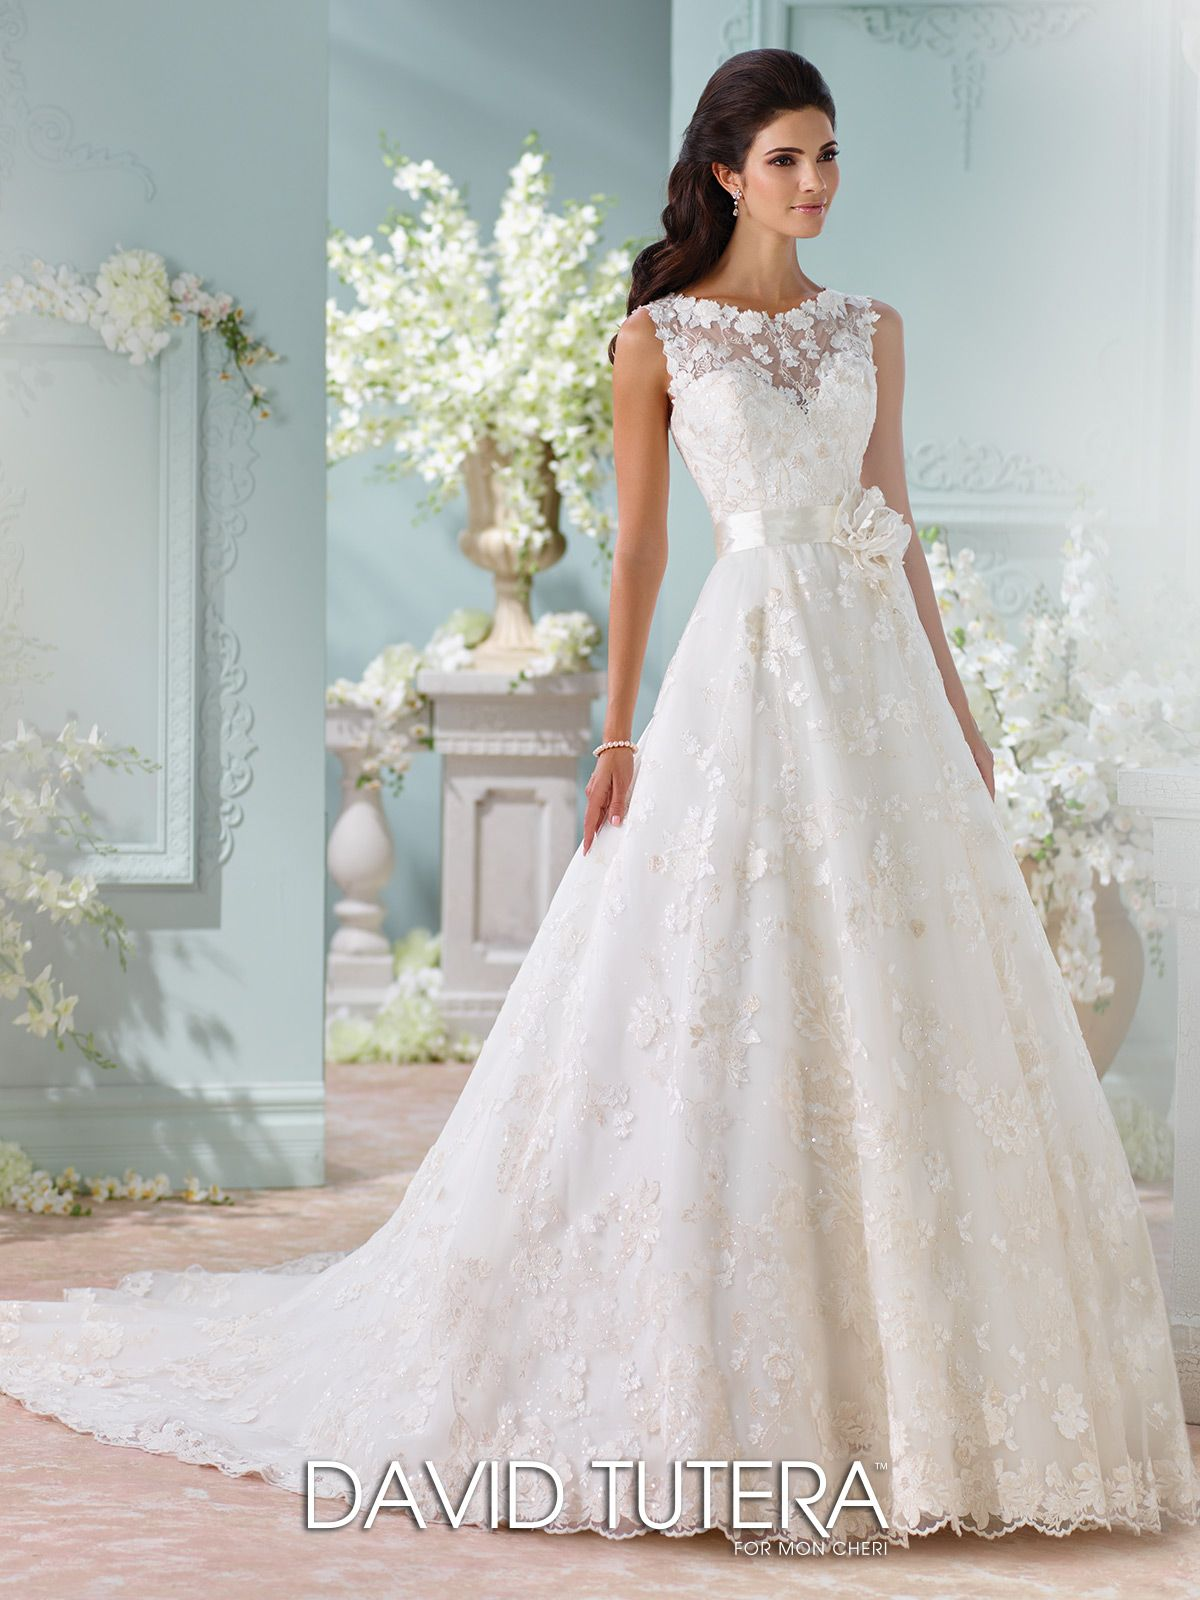 Satin sequin tulle lace a line wedding dress 116218 kyra bridal dresses ombrellifo Images